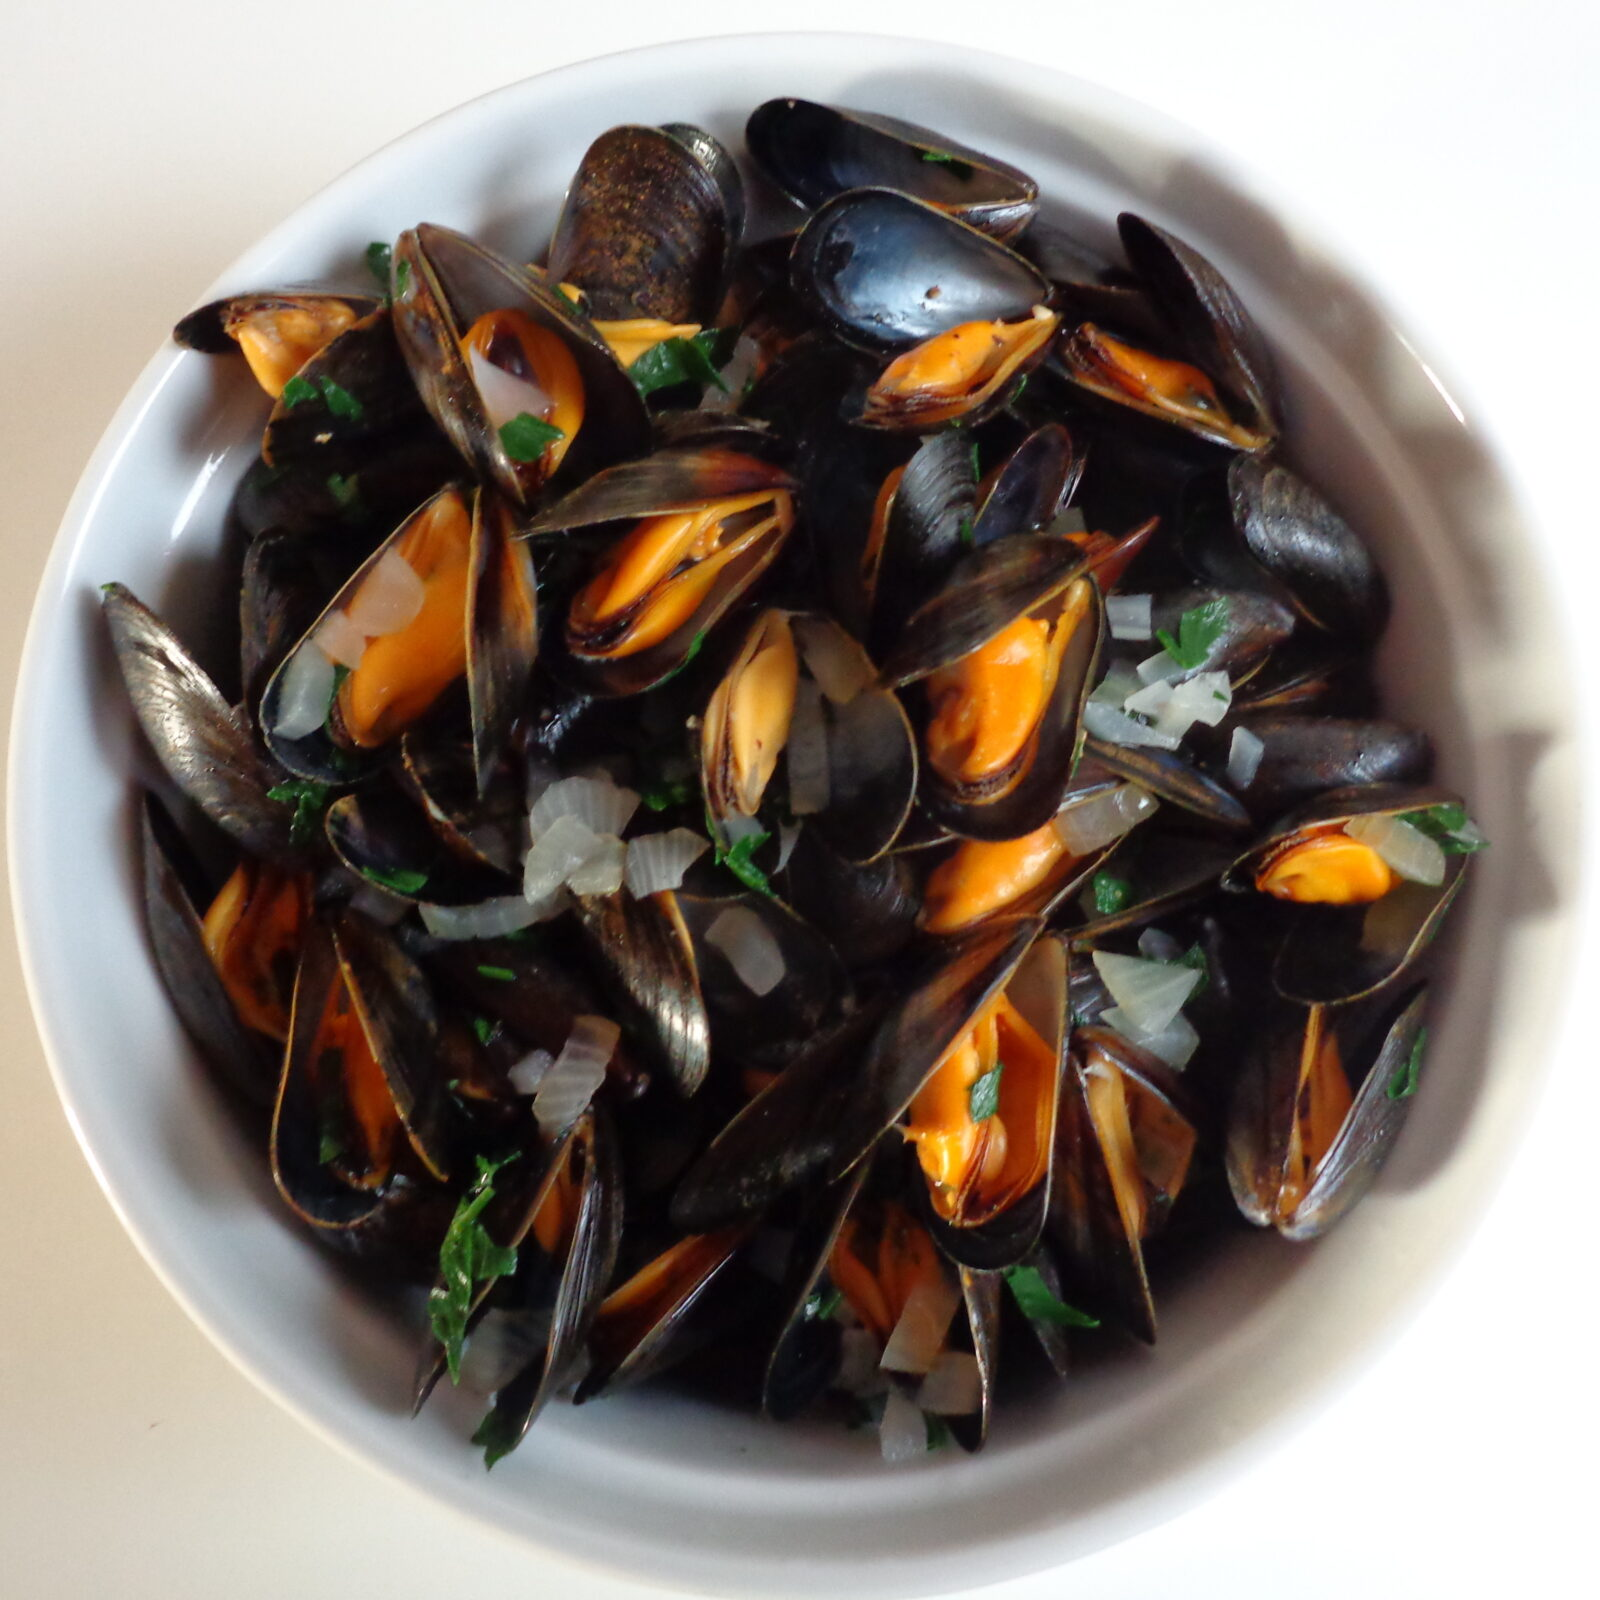 Mussels steamed in white wine | The Everyday French Chef